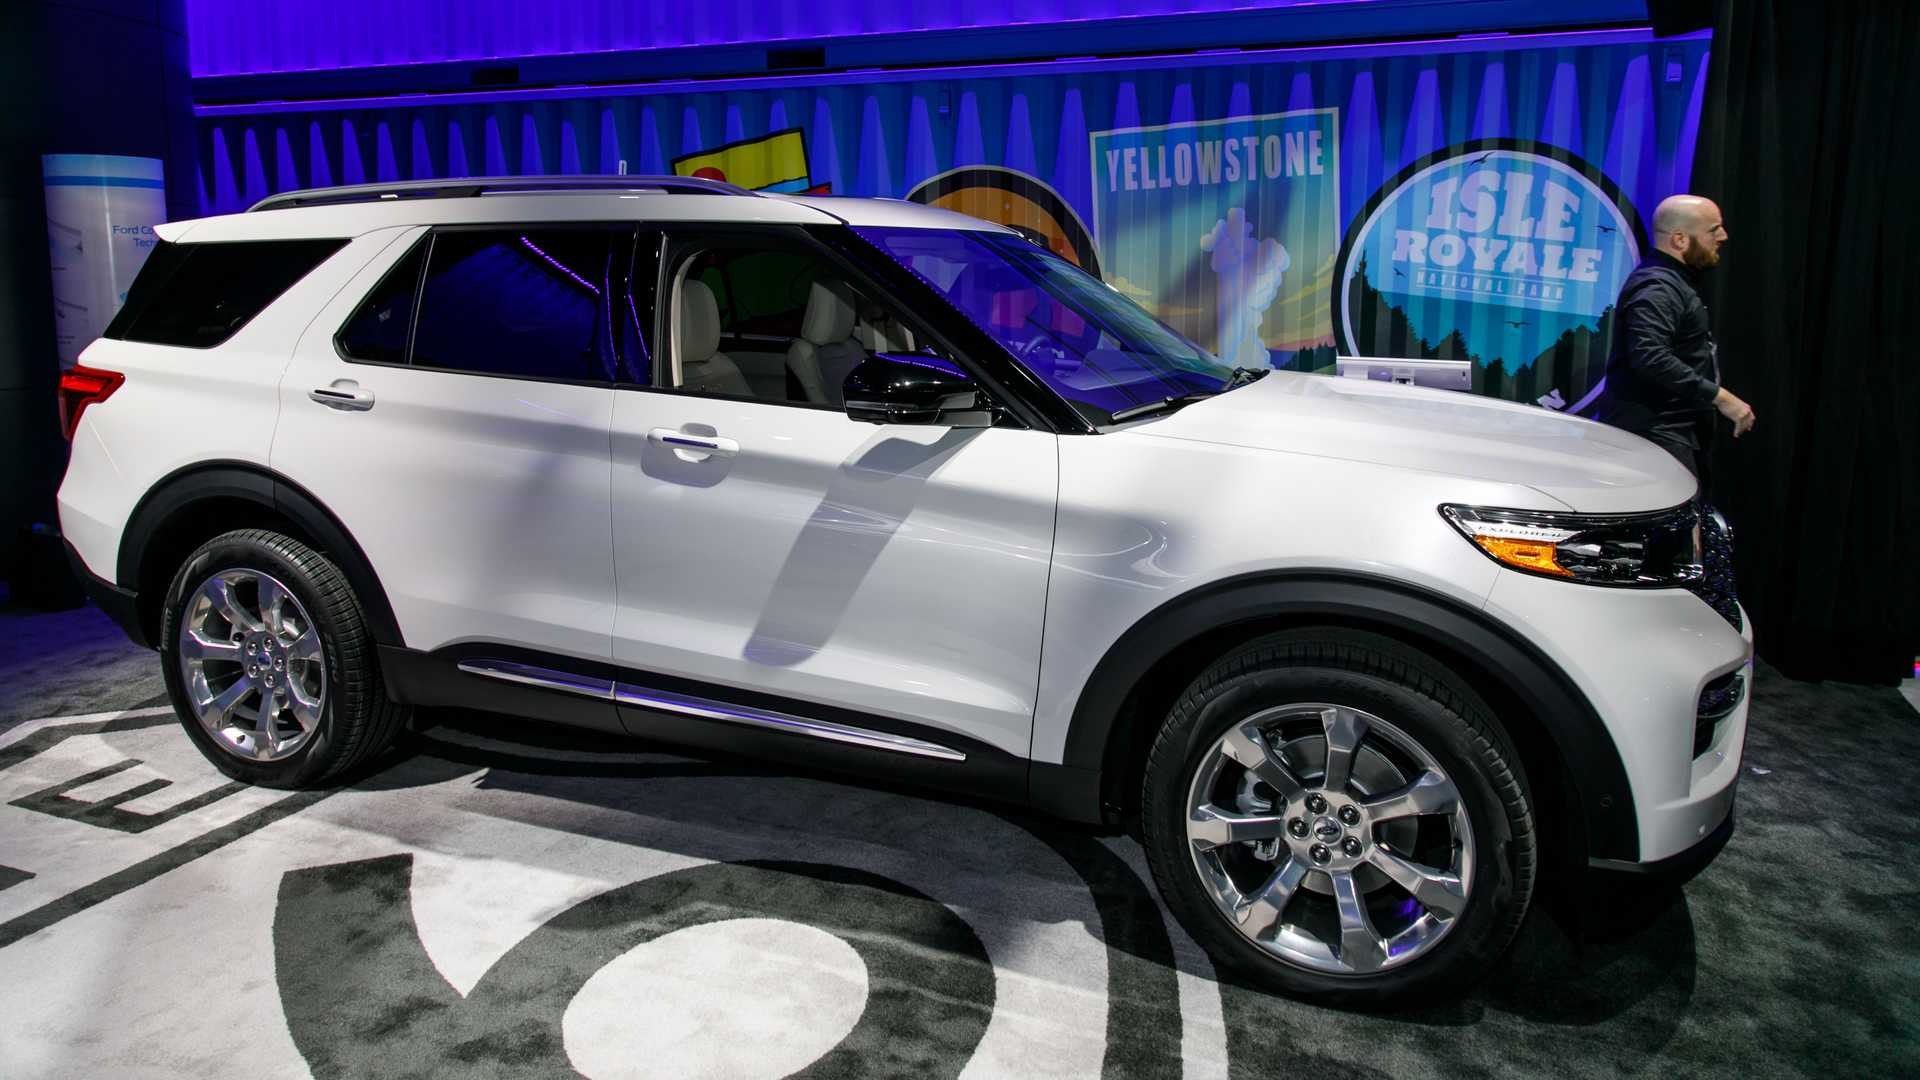 49 New 2020 Ford Explorer Availability Exterior And Interior